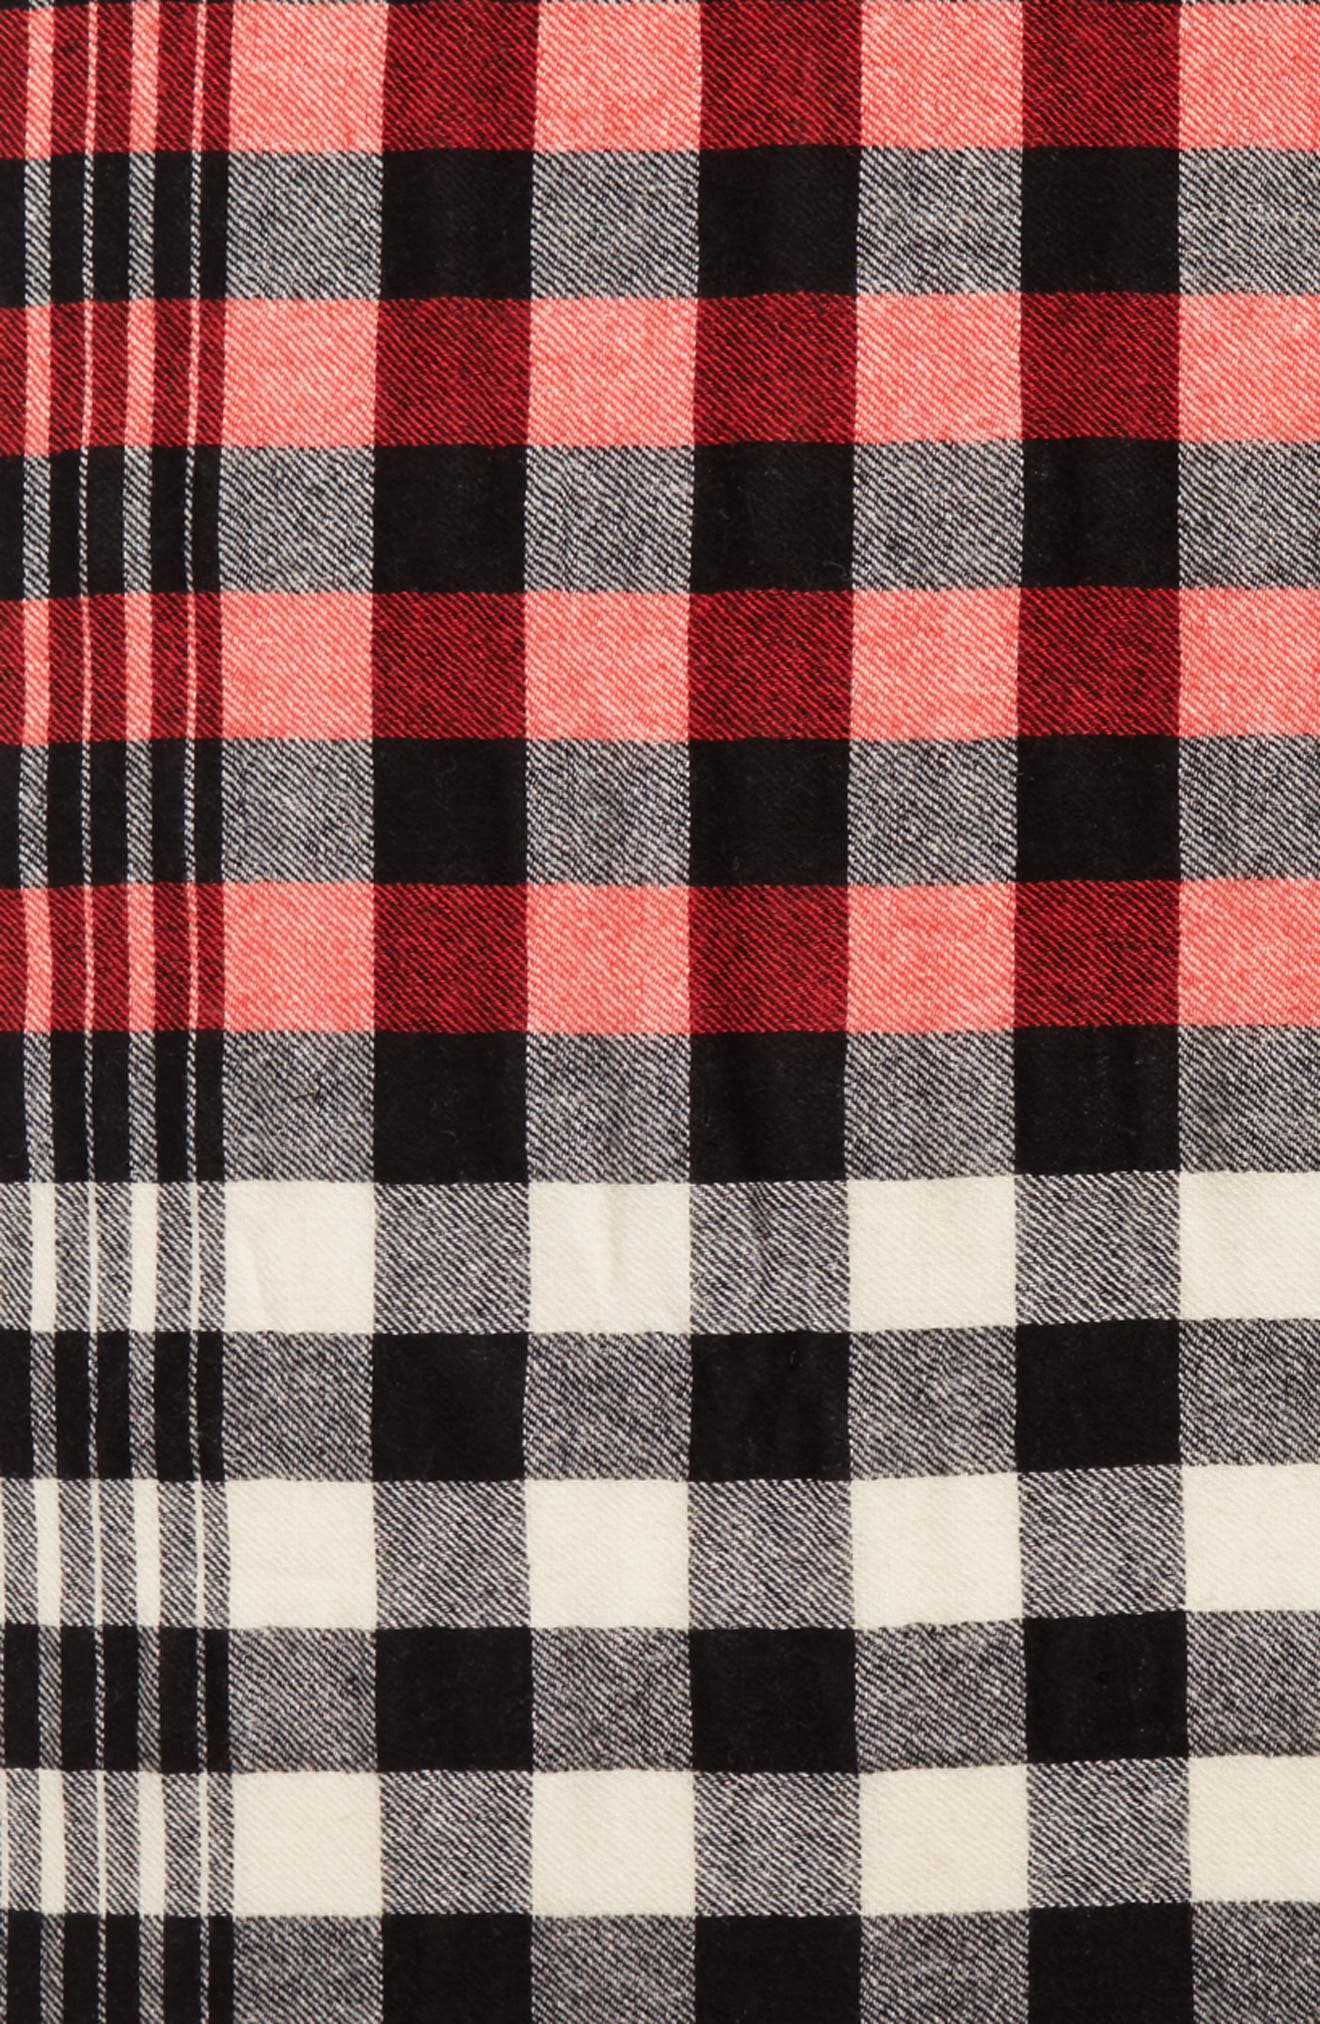 Checked Wool & Cashmere Scarf,                             Alternate thumbnail 4, color,